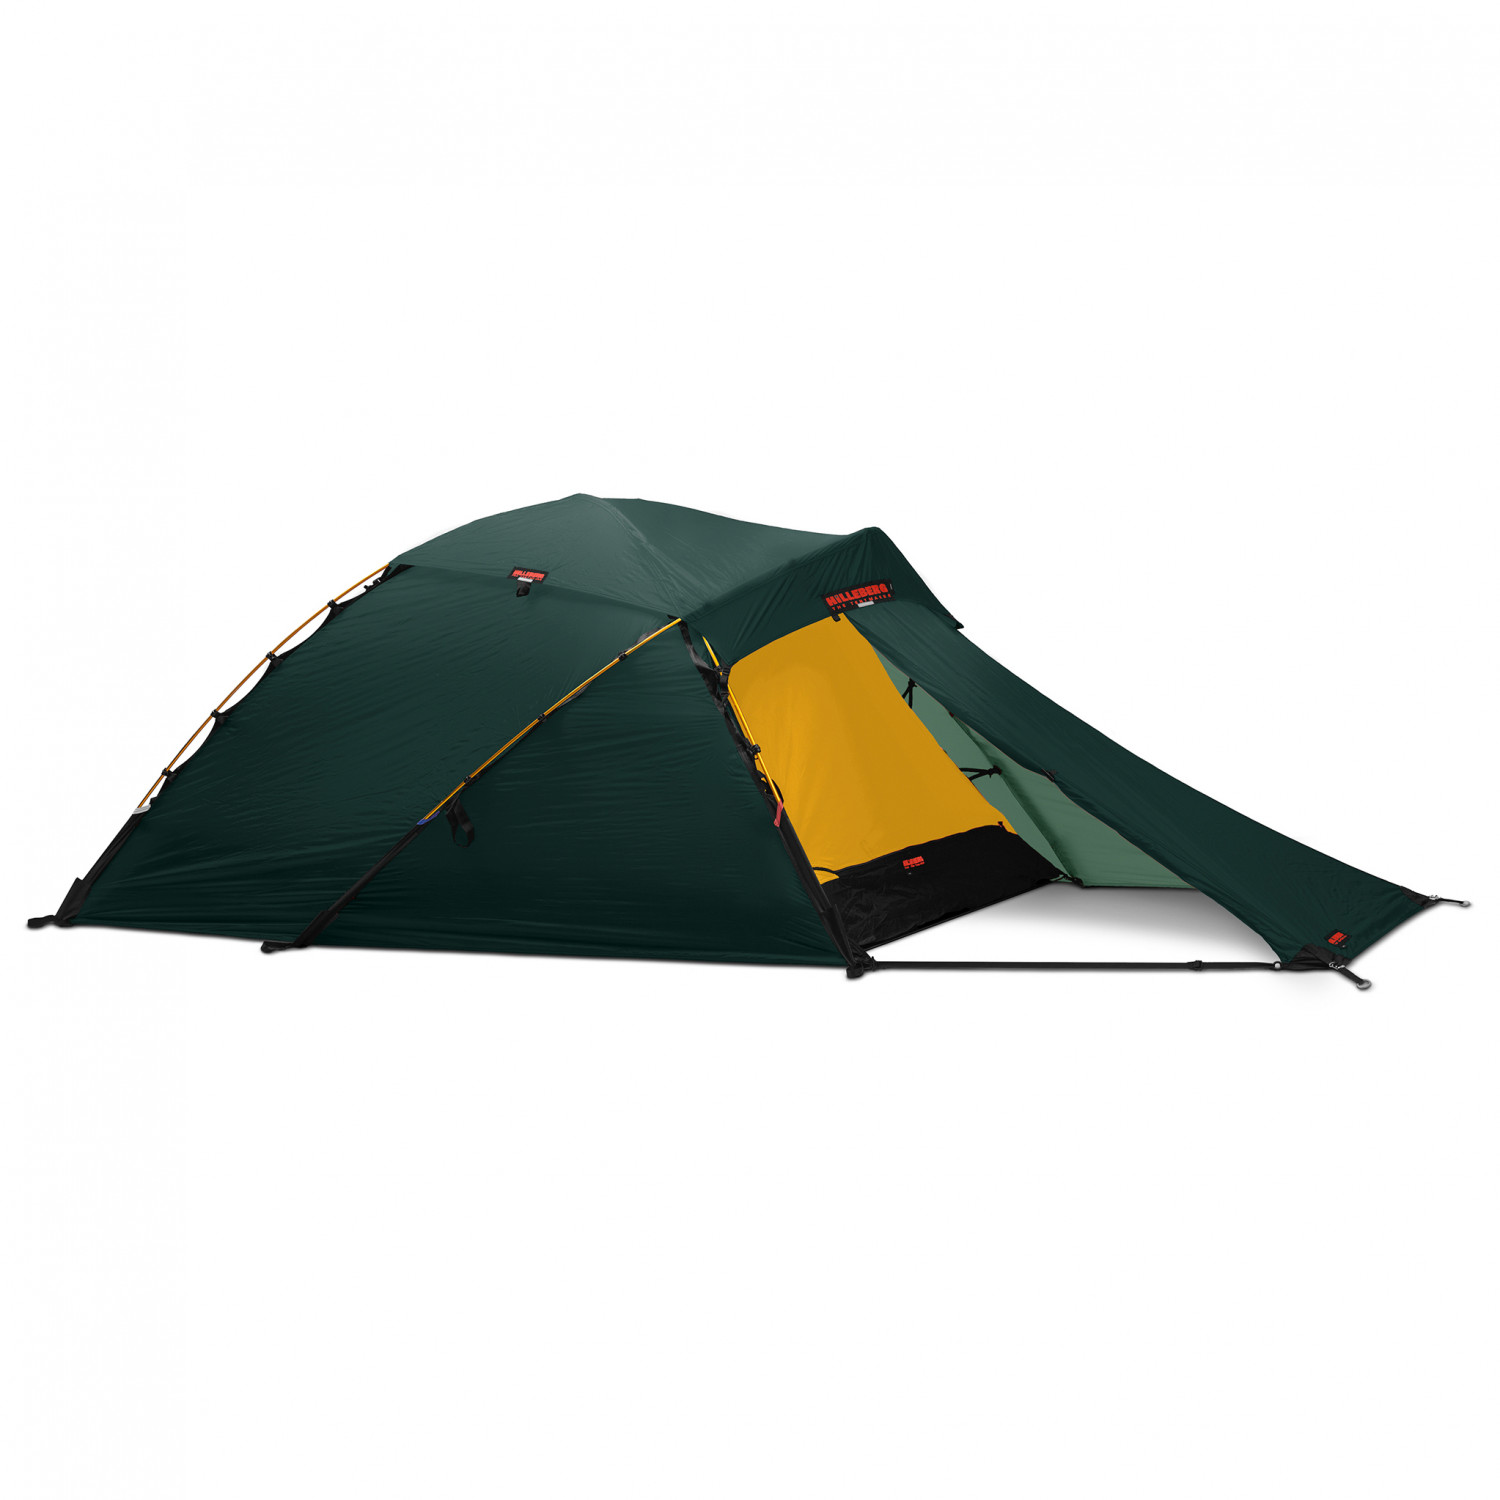 Two Person Tent : Hilleberg jannu person tent free uk delivery